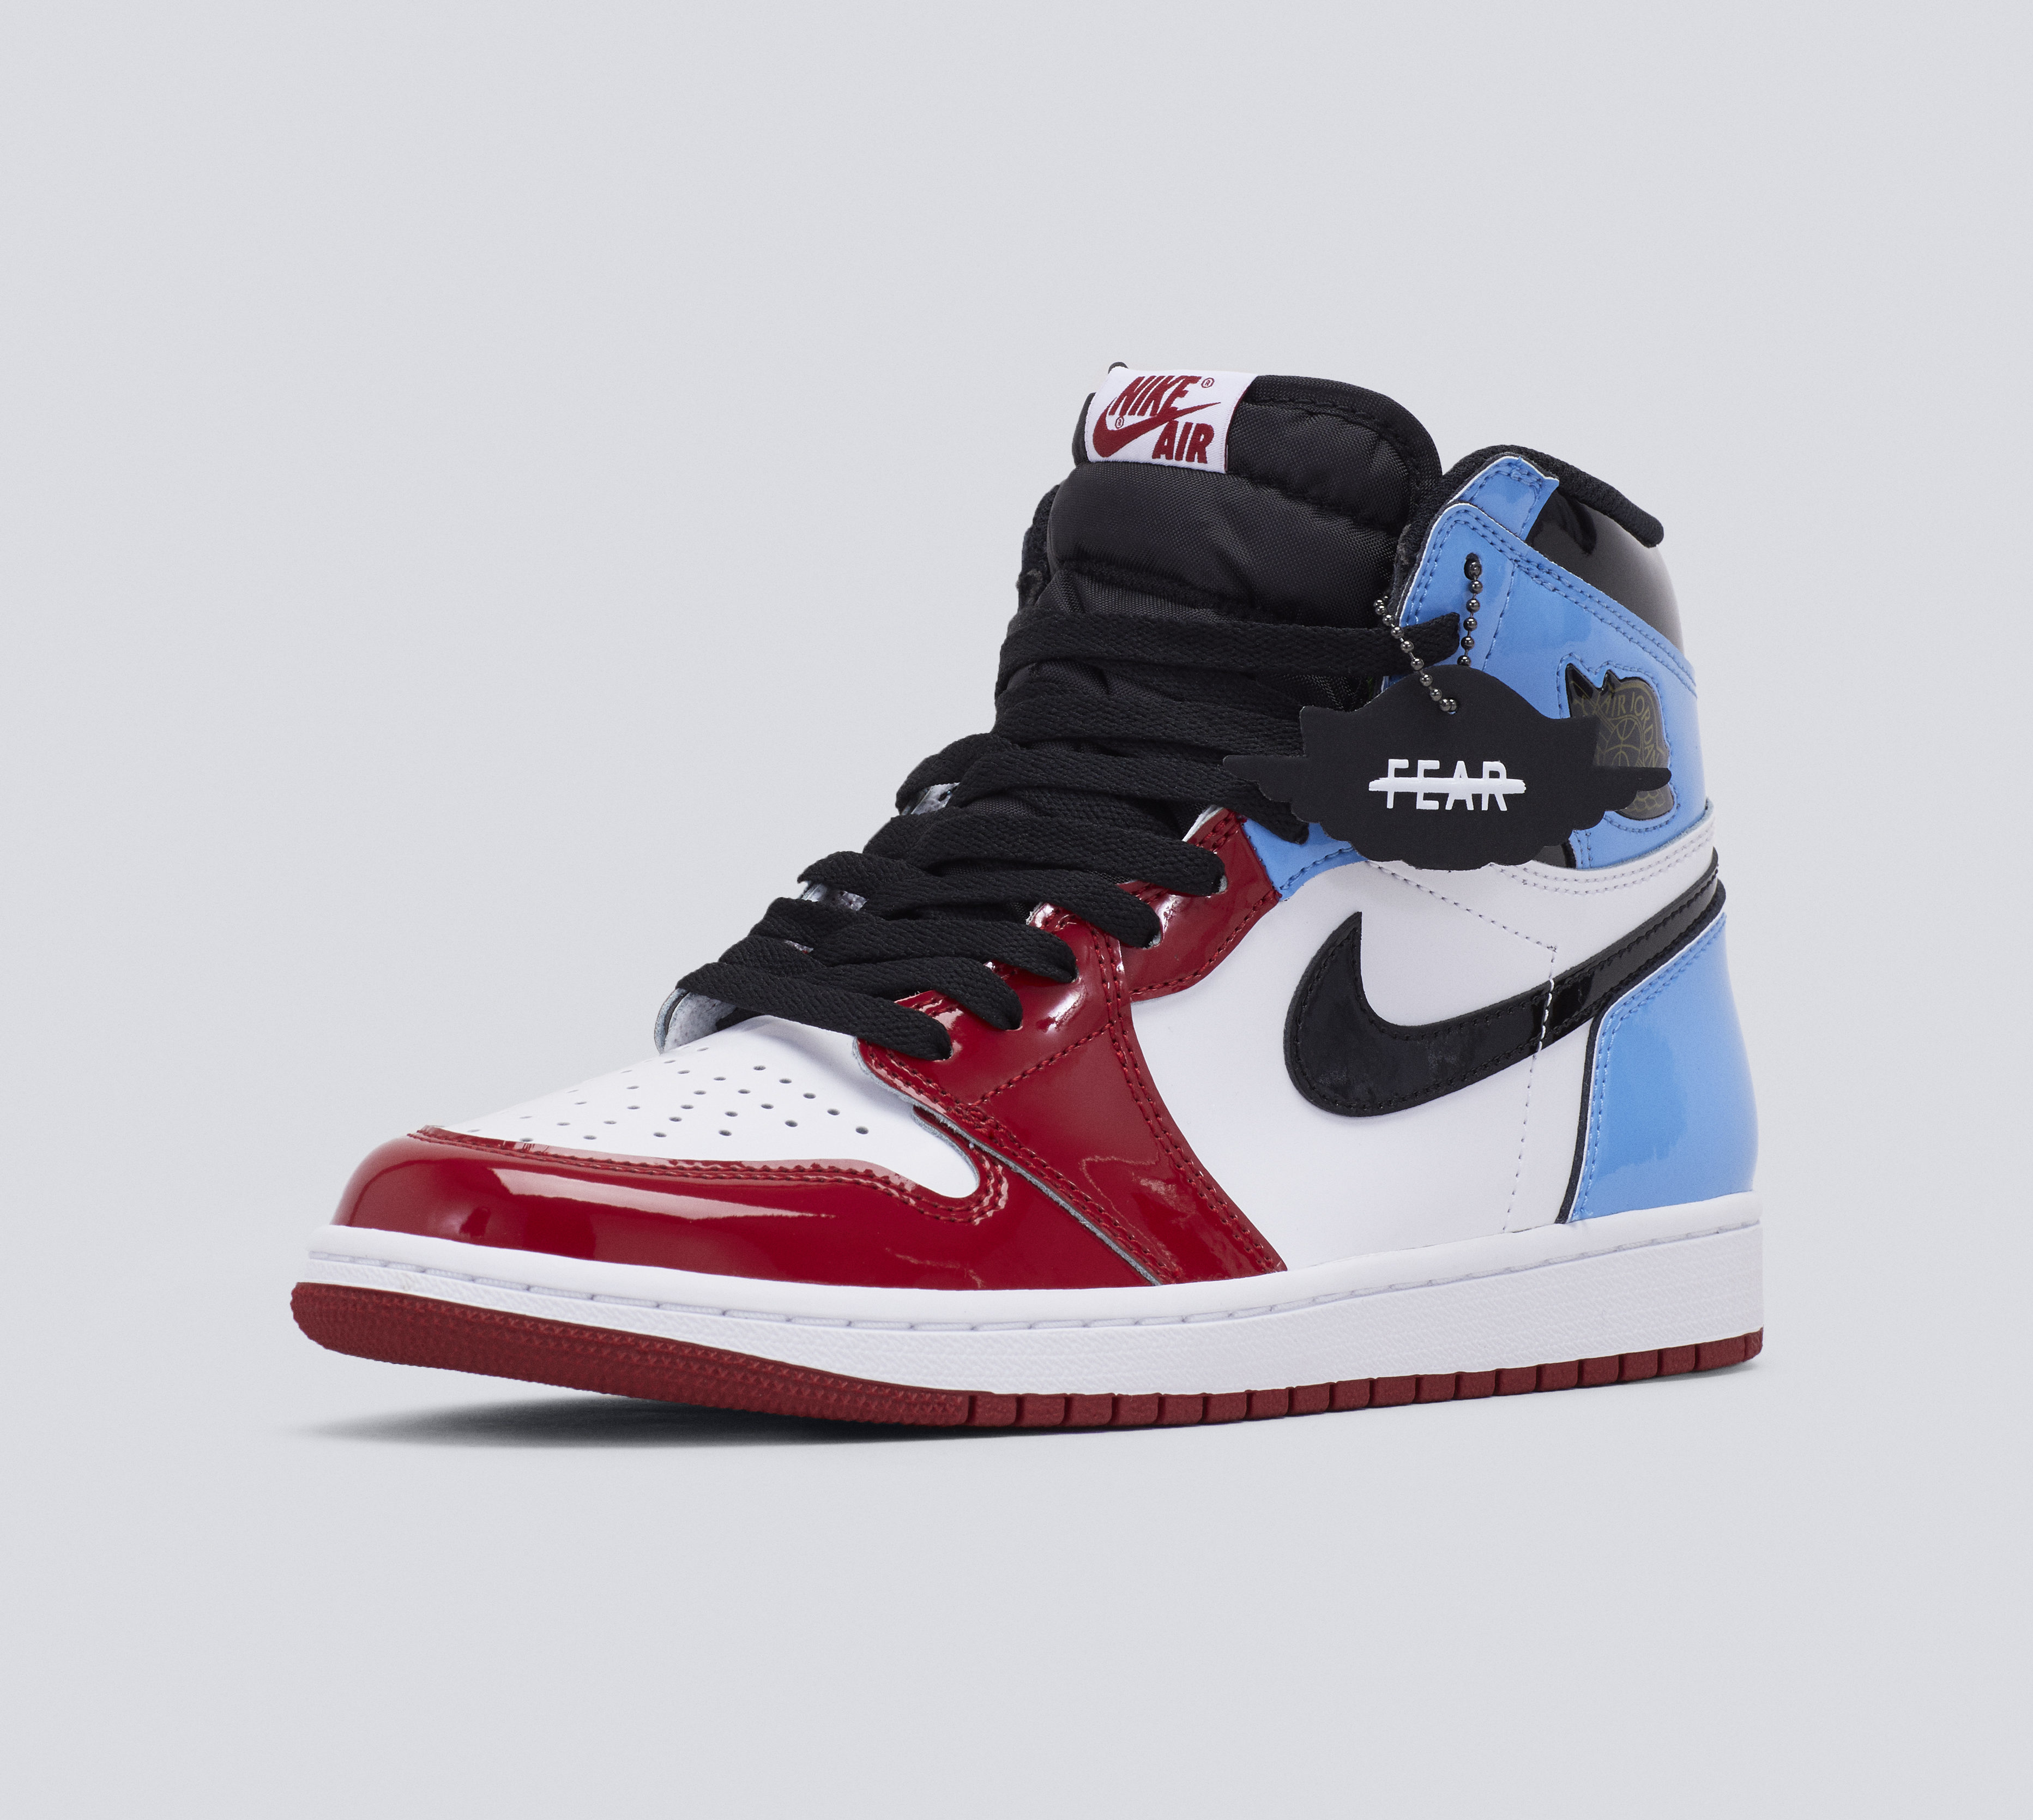 Jordan 1 Fearless UNC Chicago - By The Numbers - StockX News